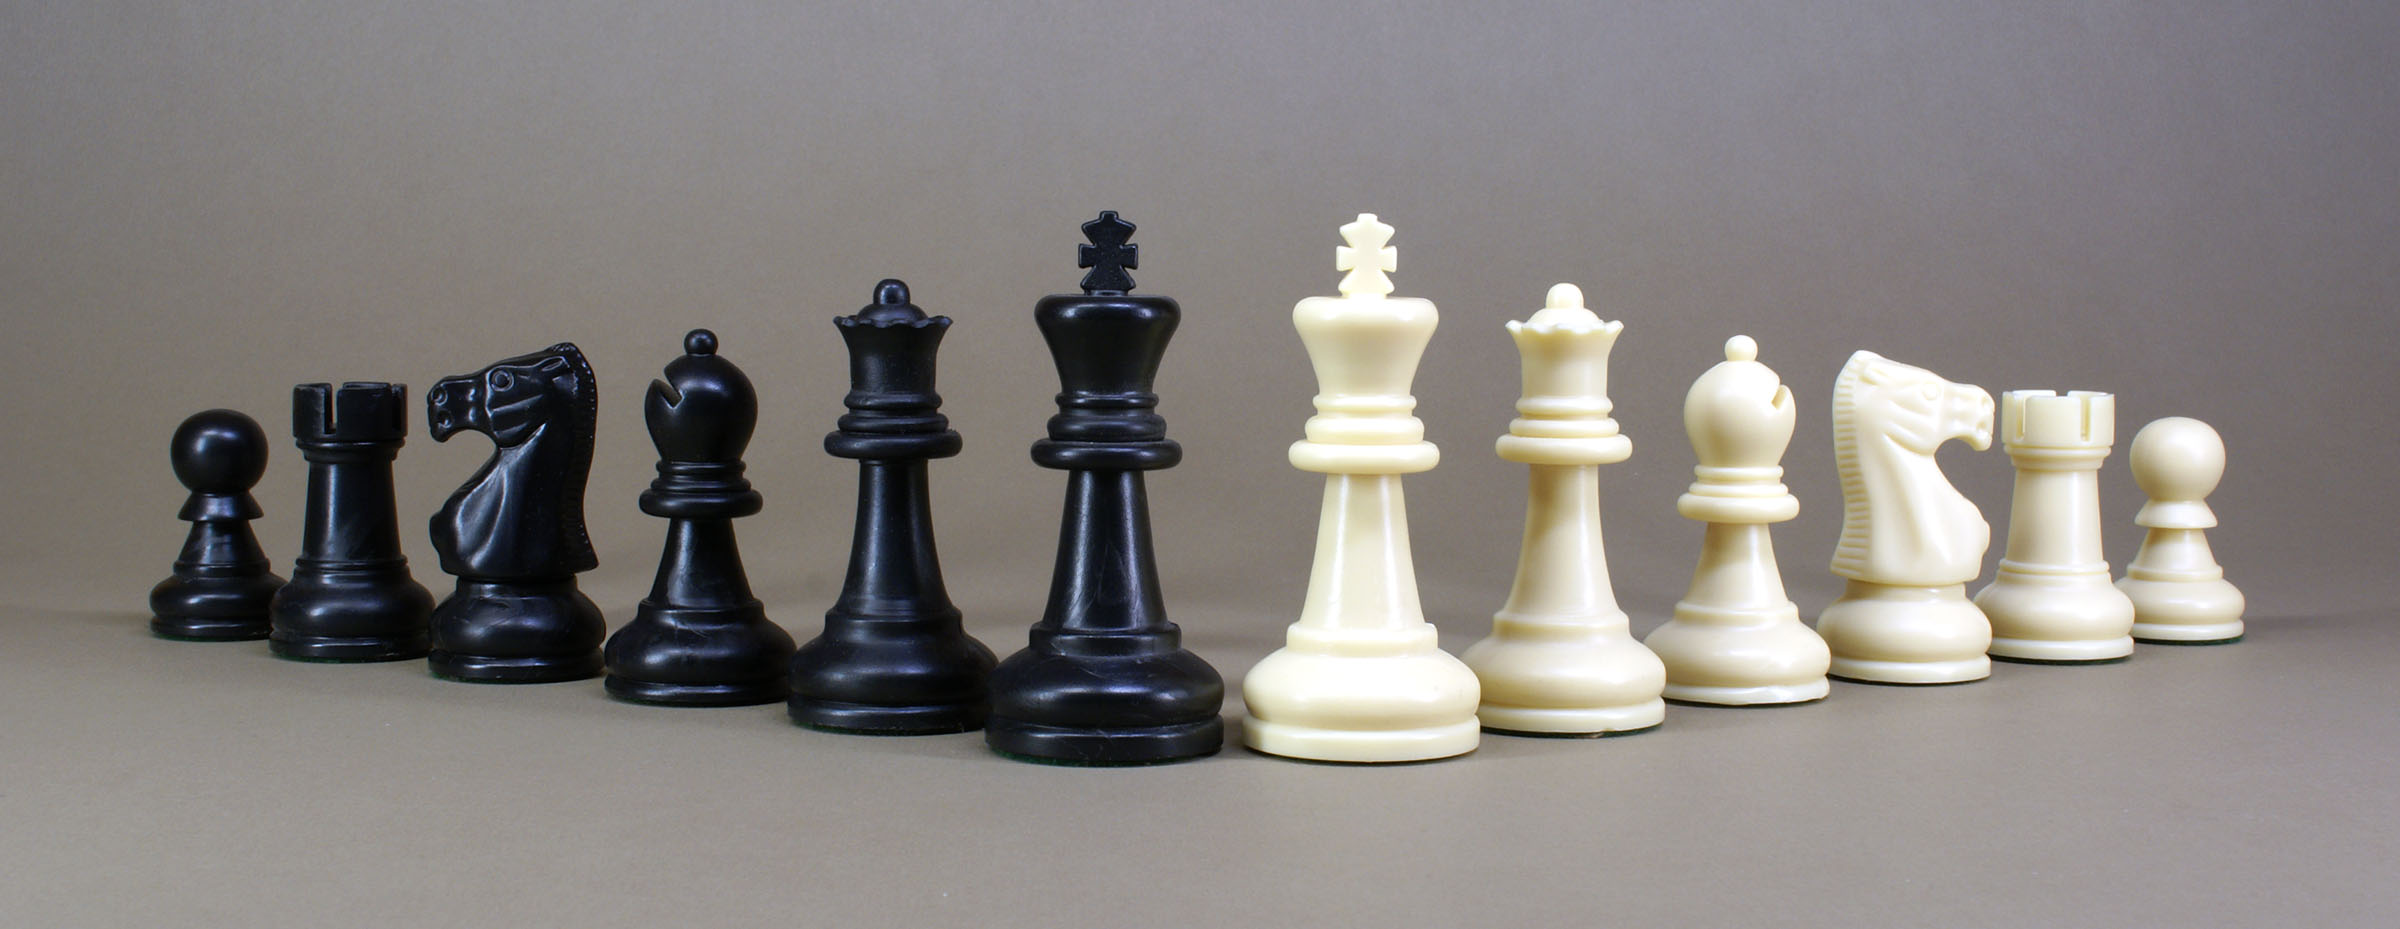 File chess wikimedia commons for Place setting images